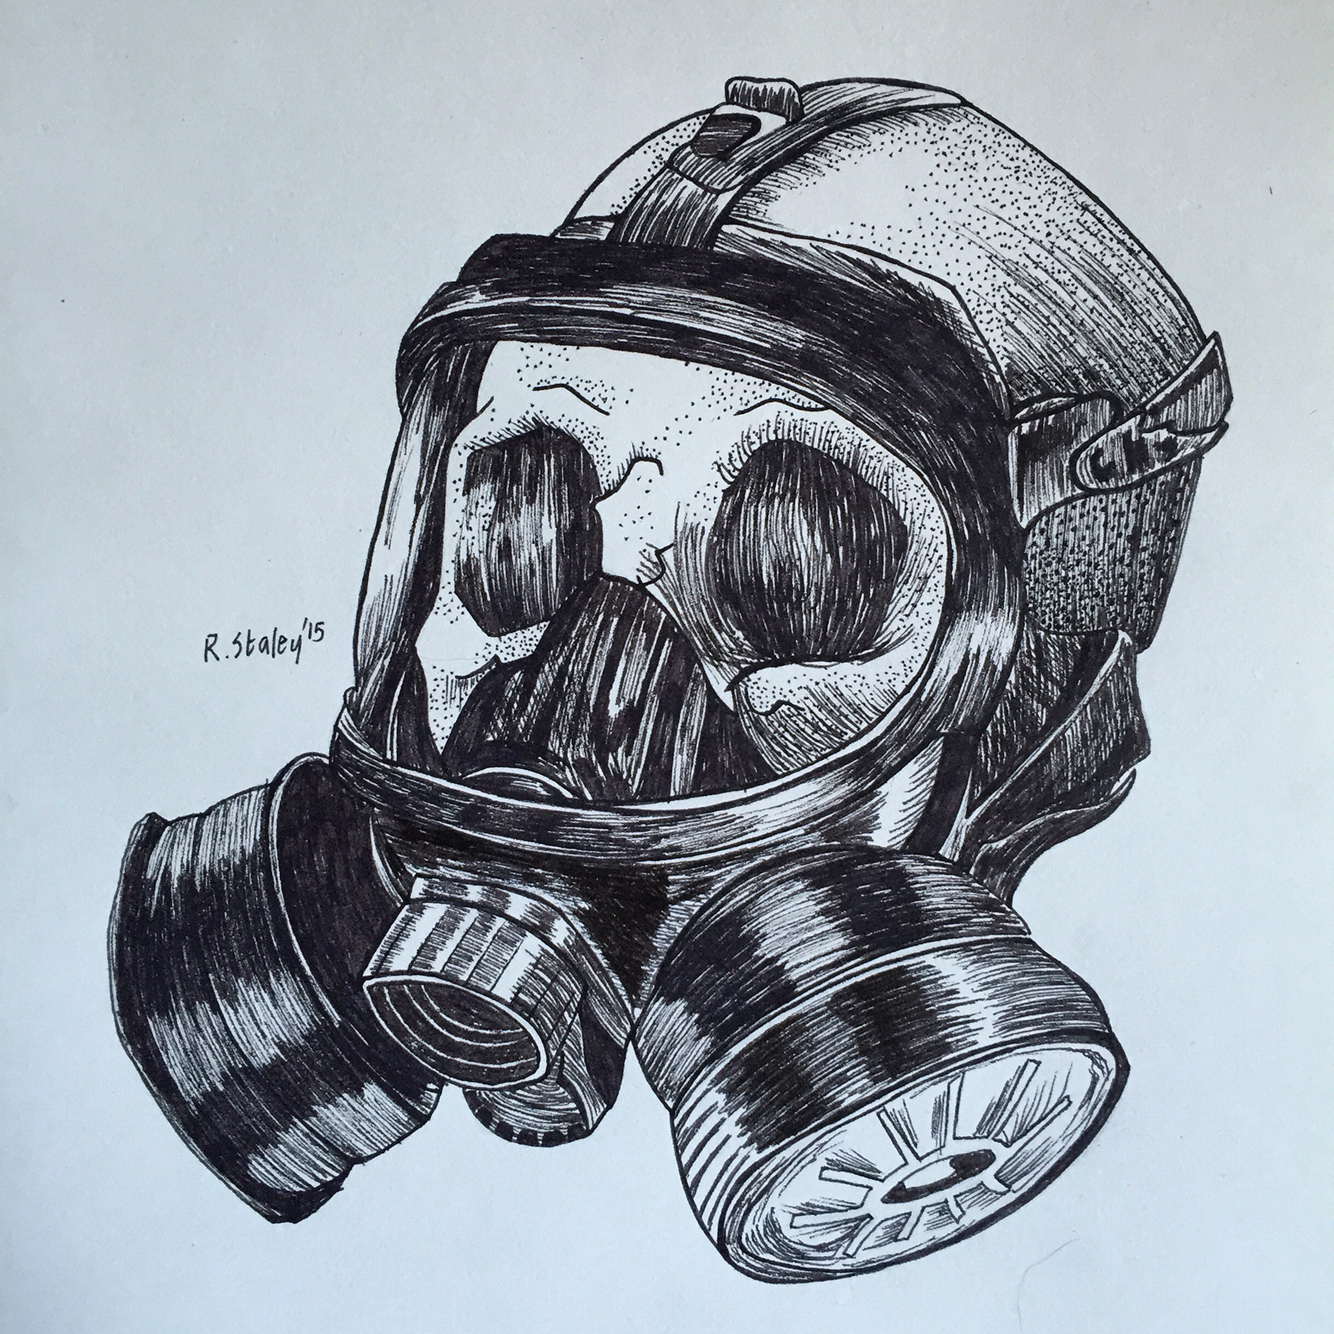 1334x1334 Skull With Gas Mask Drawing Ww2 Gas Mask In Skull Drawings